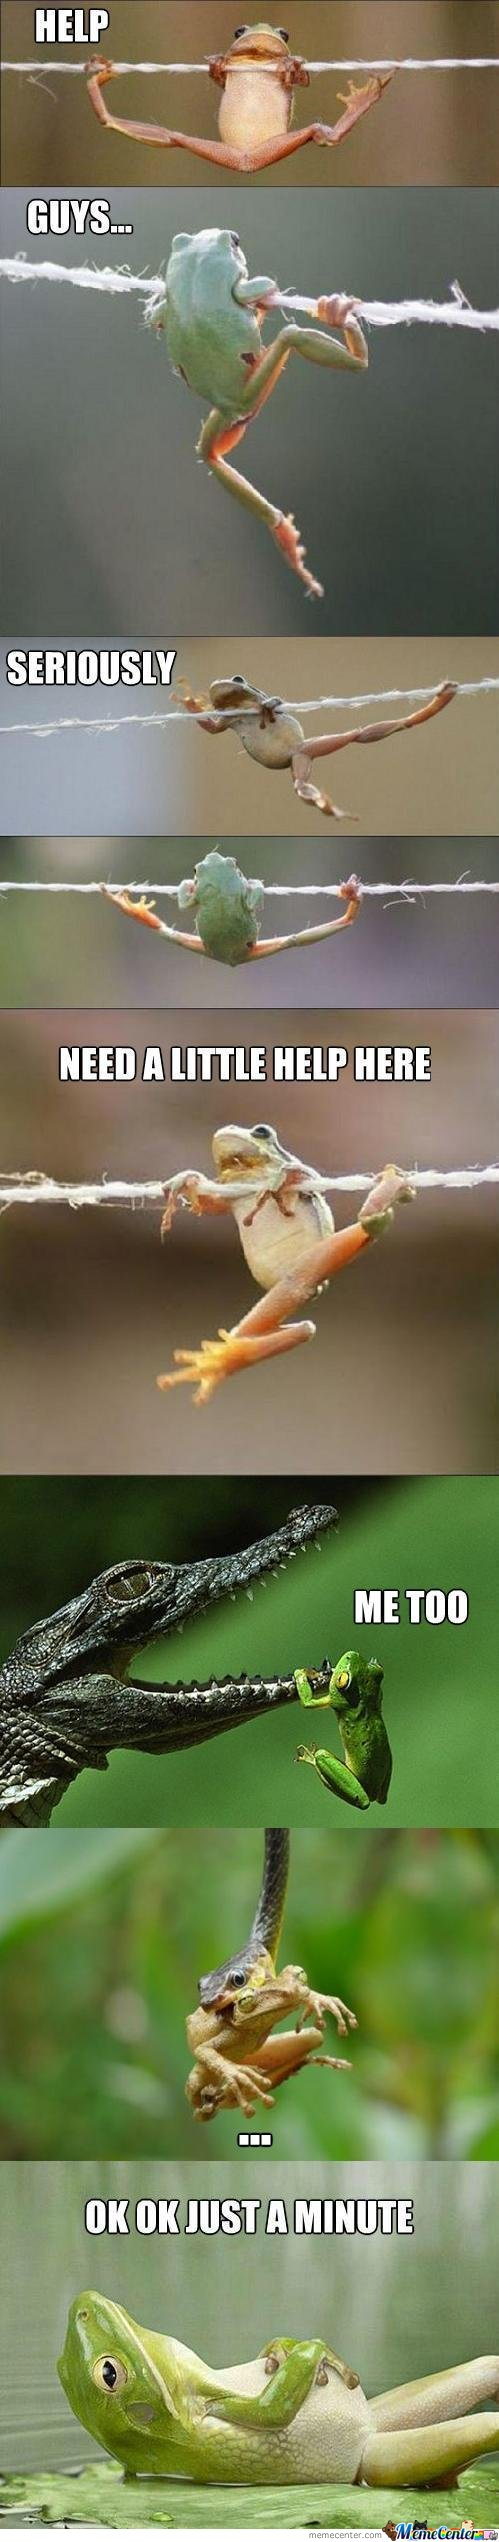 Frog : help guys . need a little help here